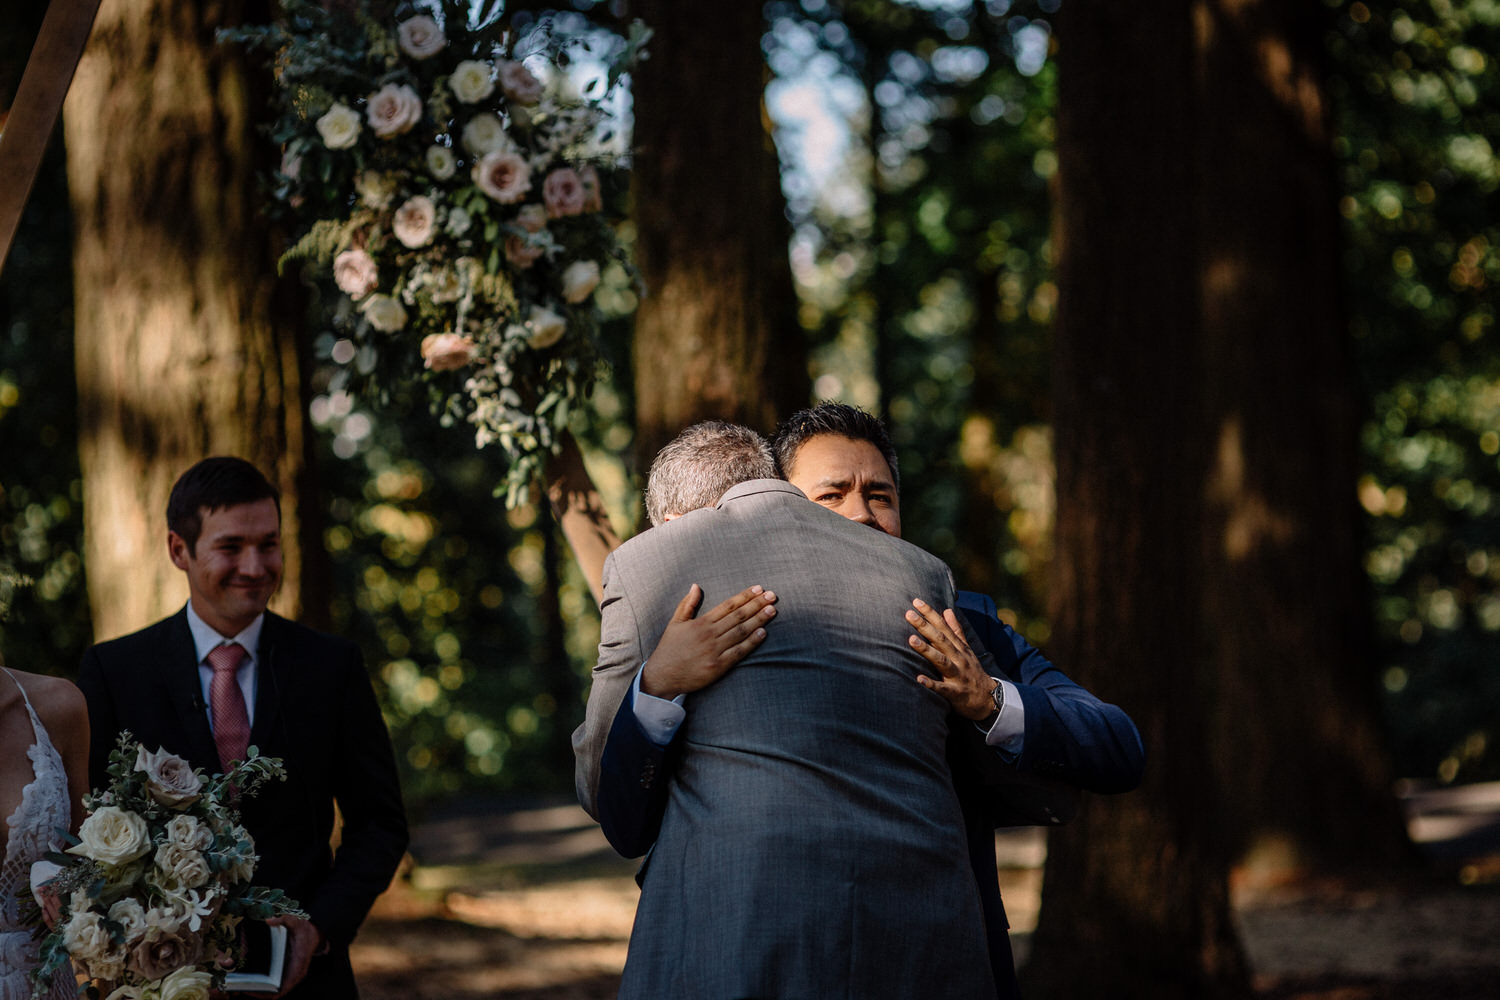 Mount Tabor Portland Oregon wedding photographer038.JPG